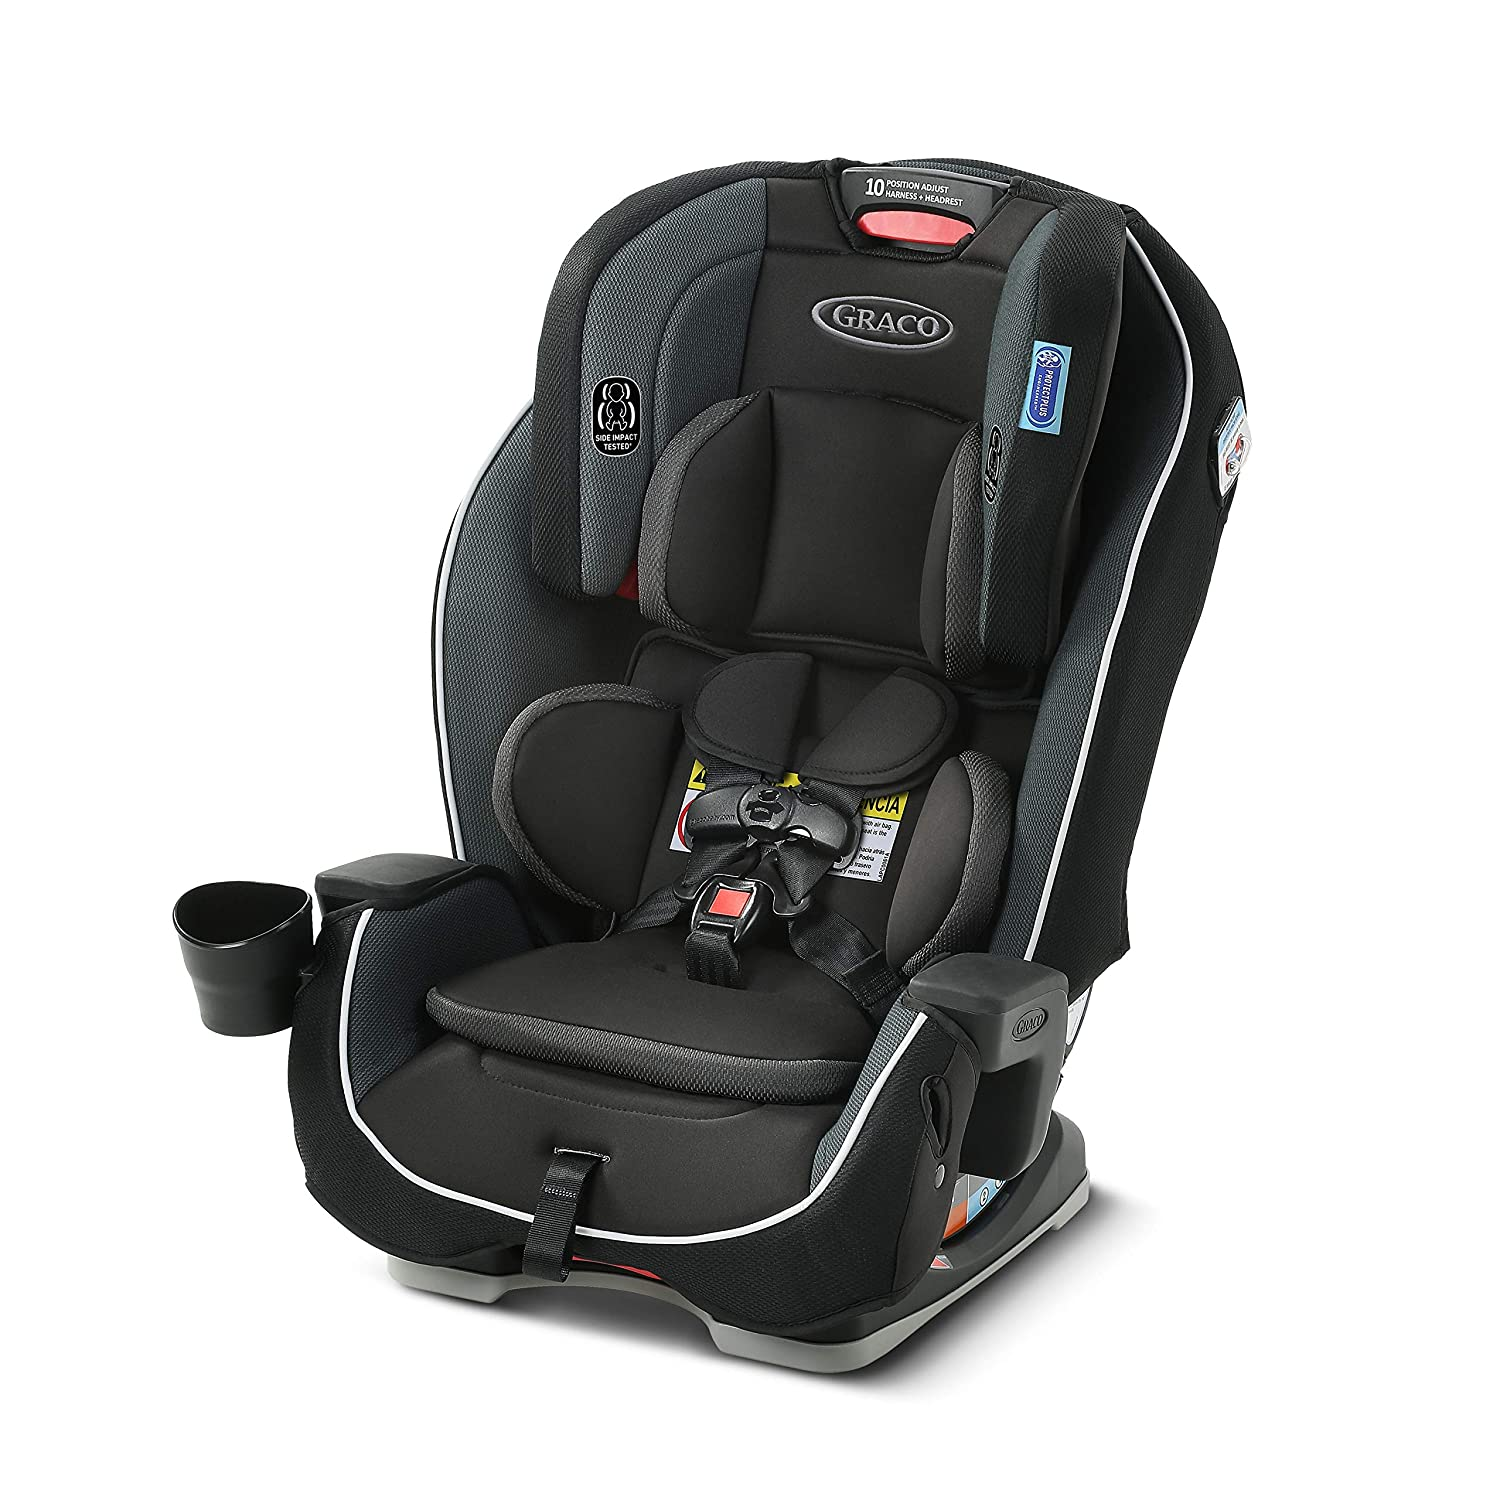 Milestone 3 in 1 Car Seat | Infant to Toddler Car Seat, Gotham